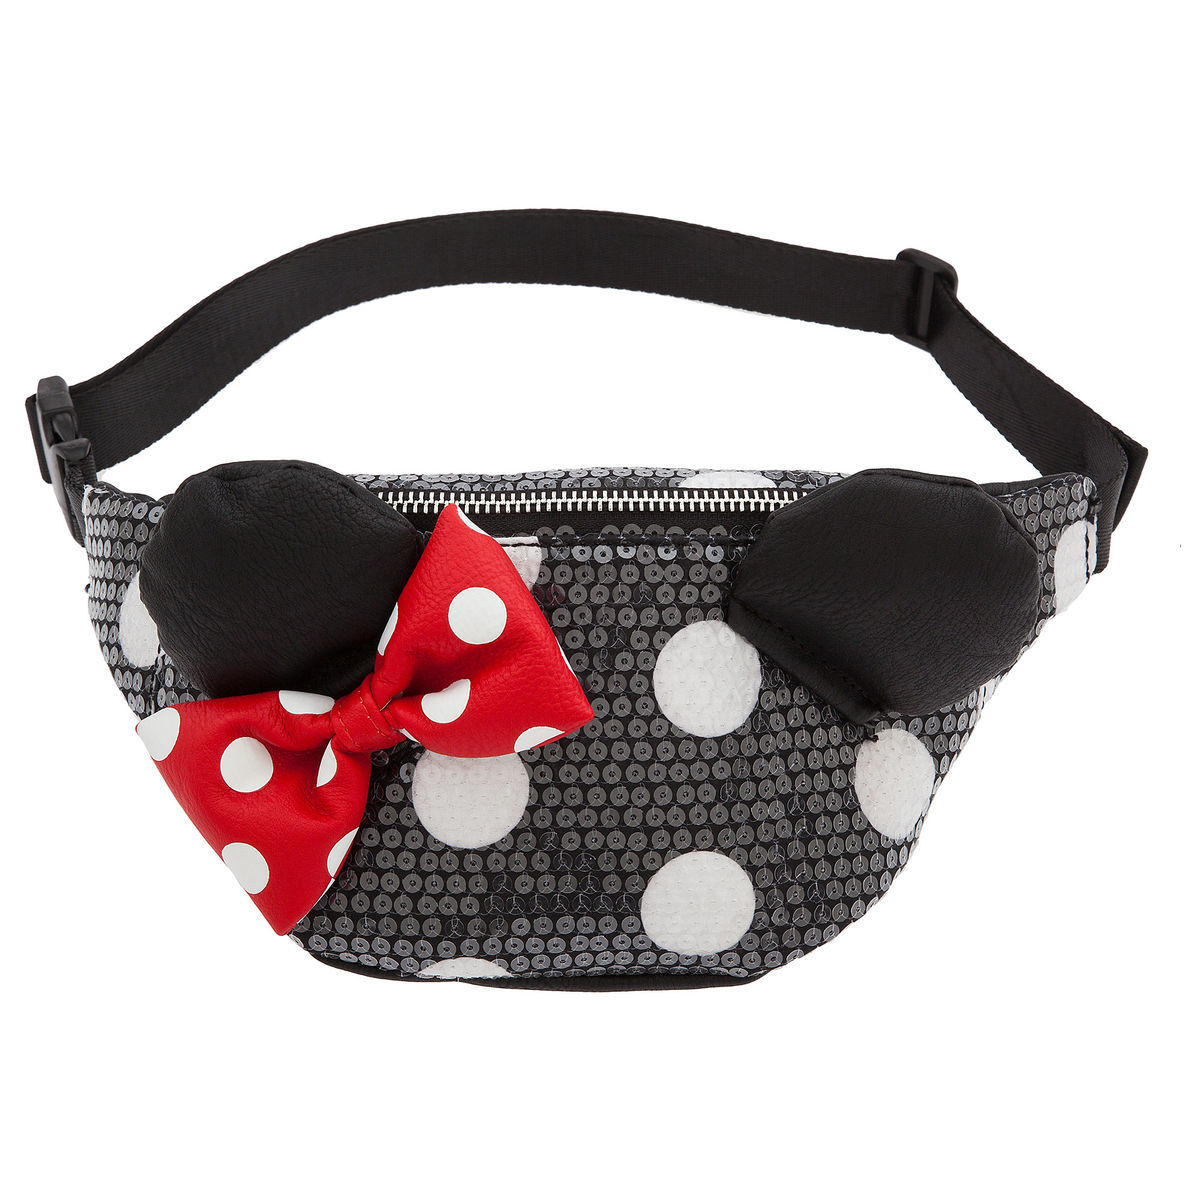 Add to My Lists. Disney Loungefly Waist Pack Bag - Minnie Mouse Sequined 3eb54f276212f